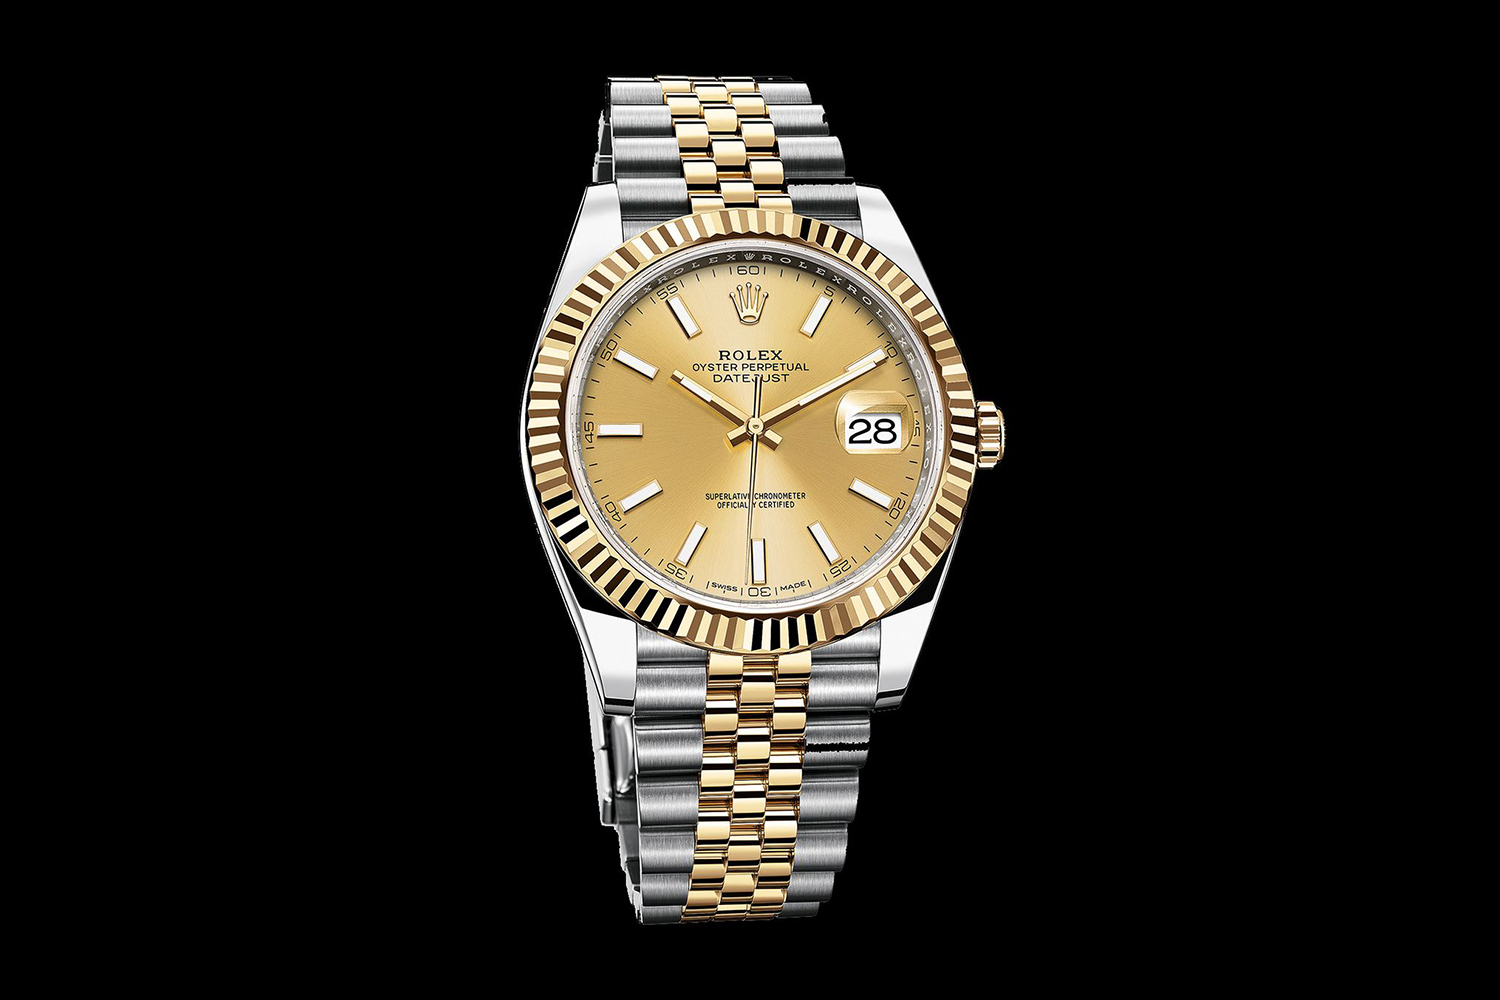 Rolex Introduces the Brand New 41mm Datejust